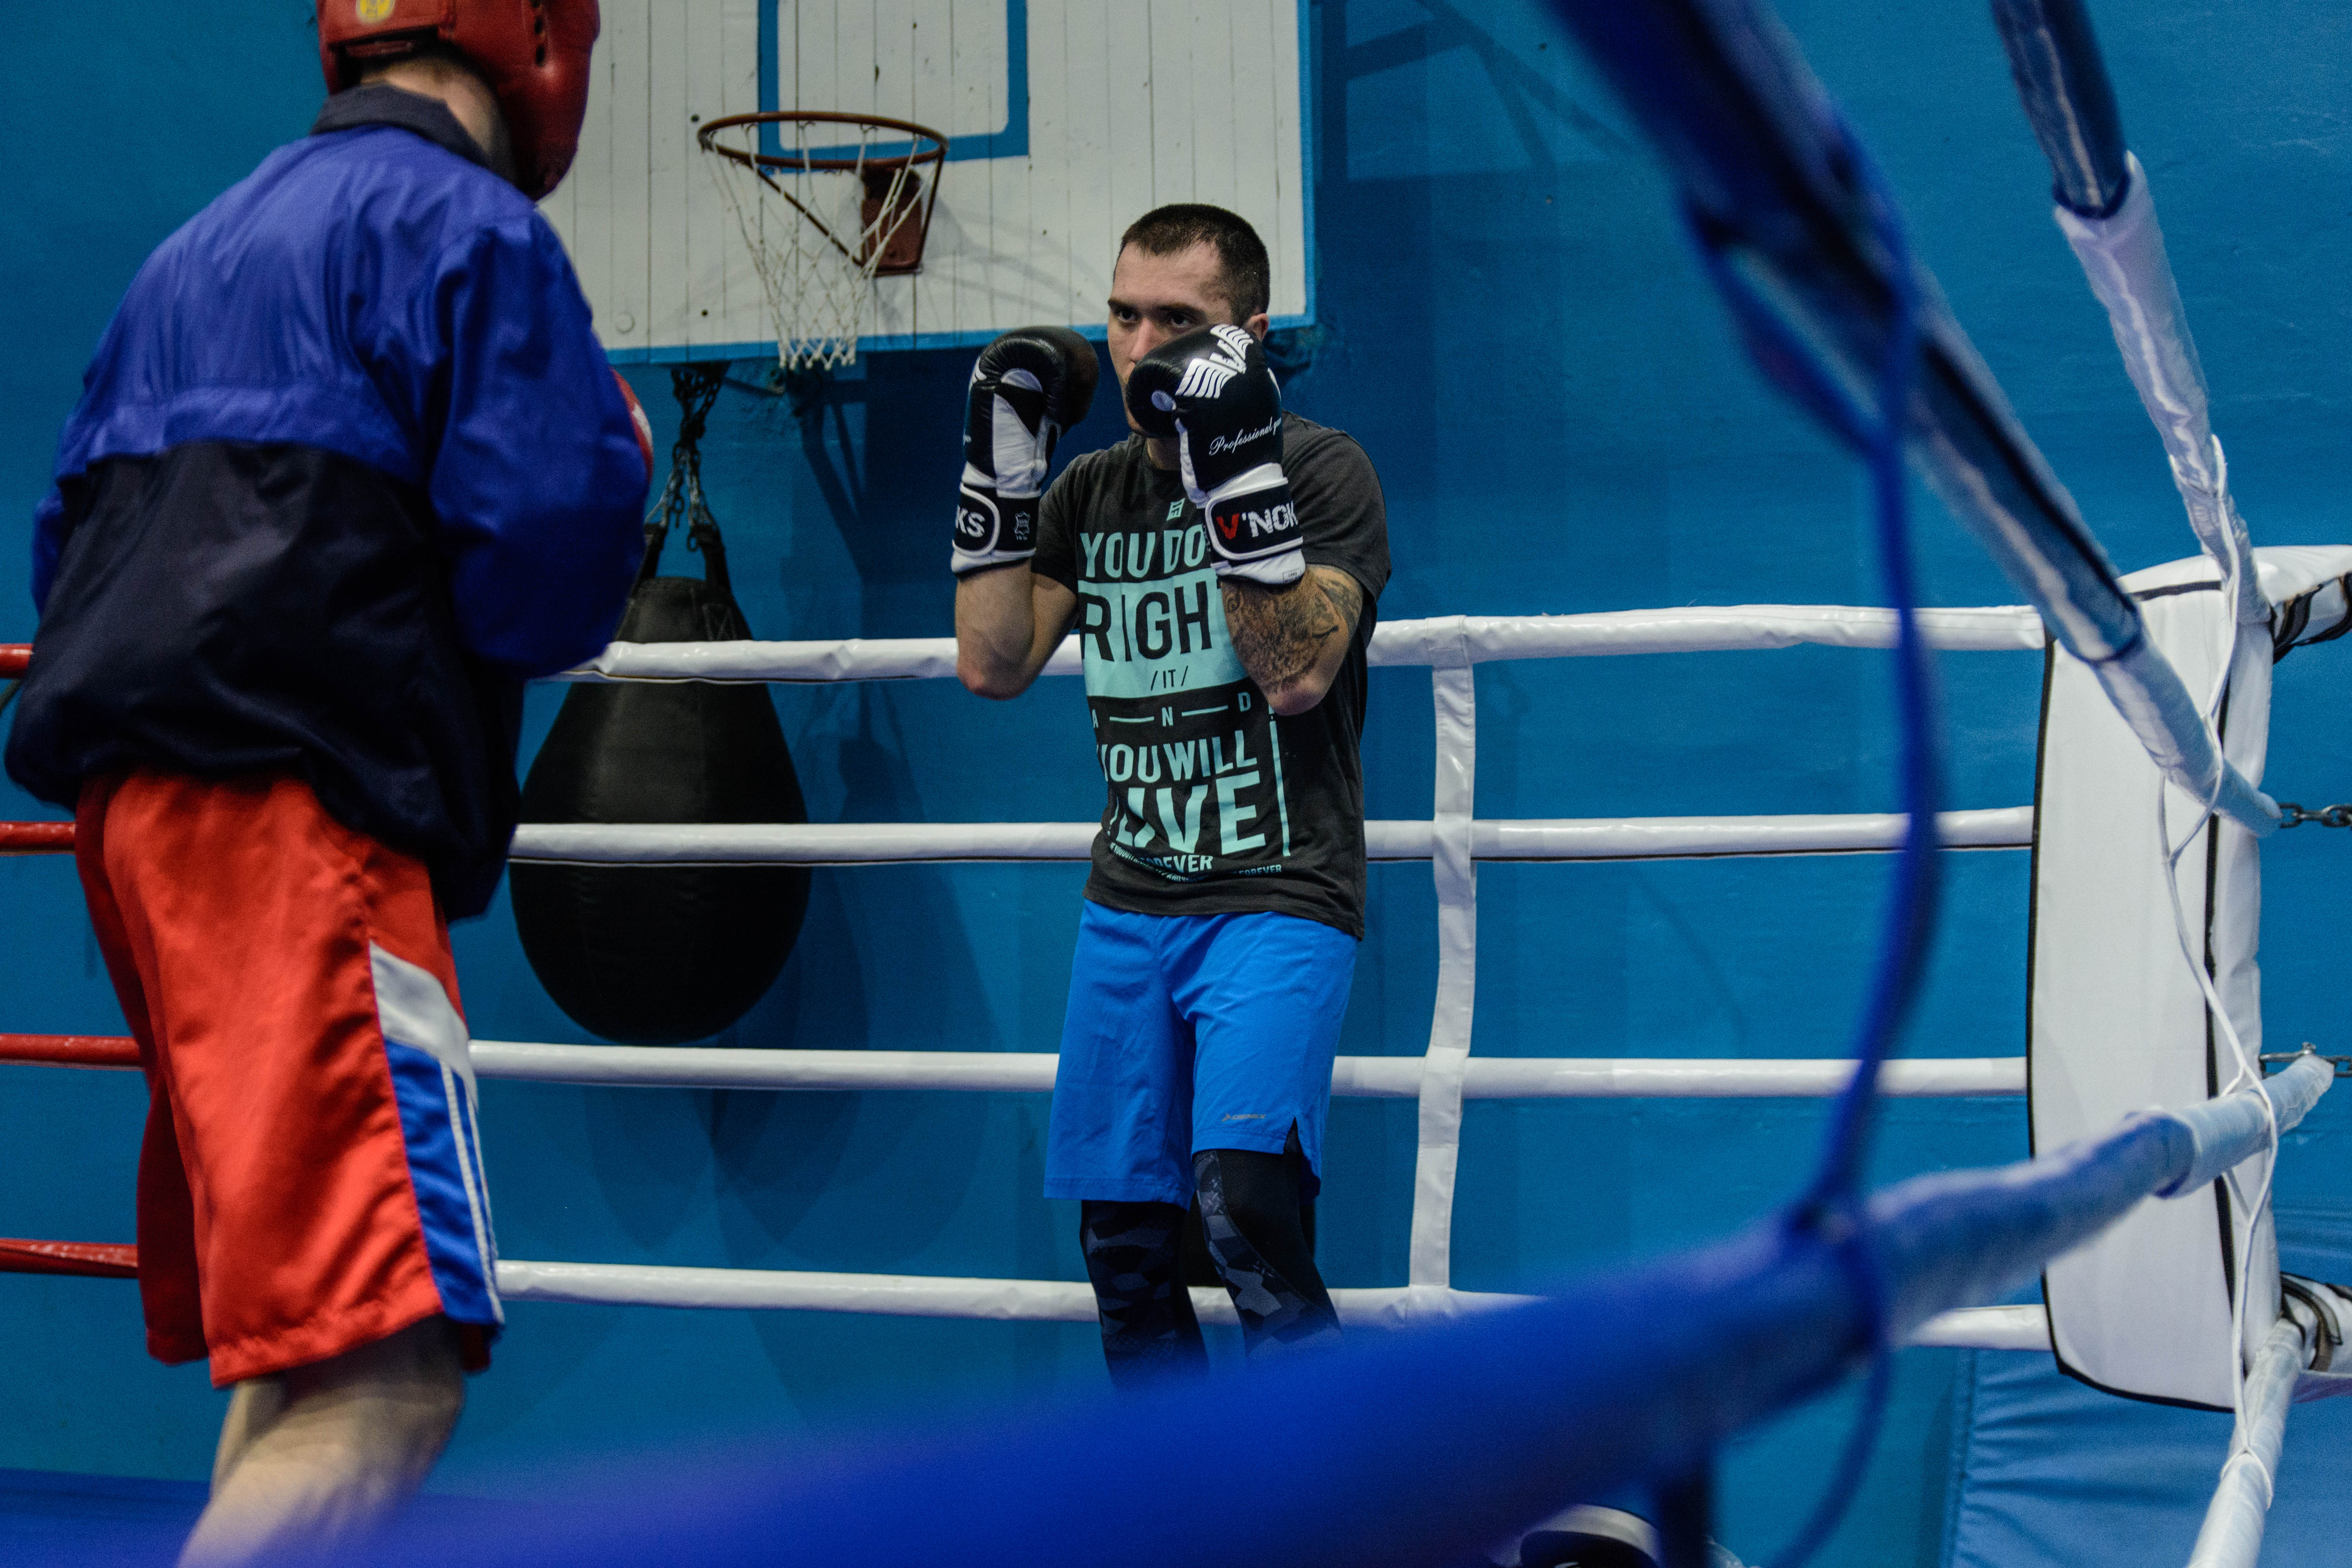 Coach Aleksandr Shyrshyn (right) sparring with one of his pupils